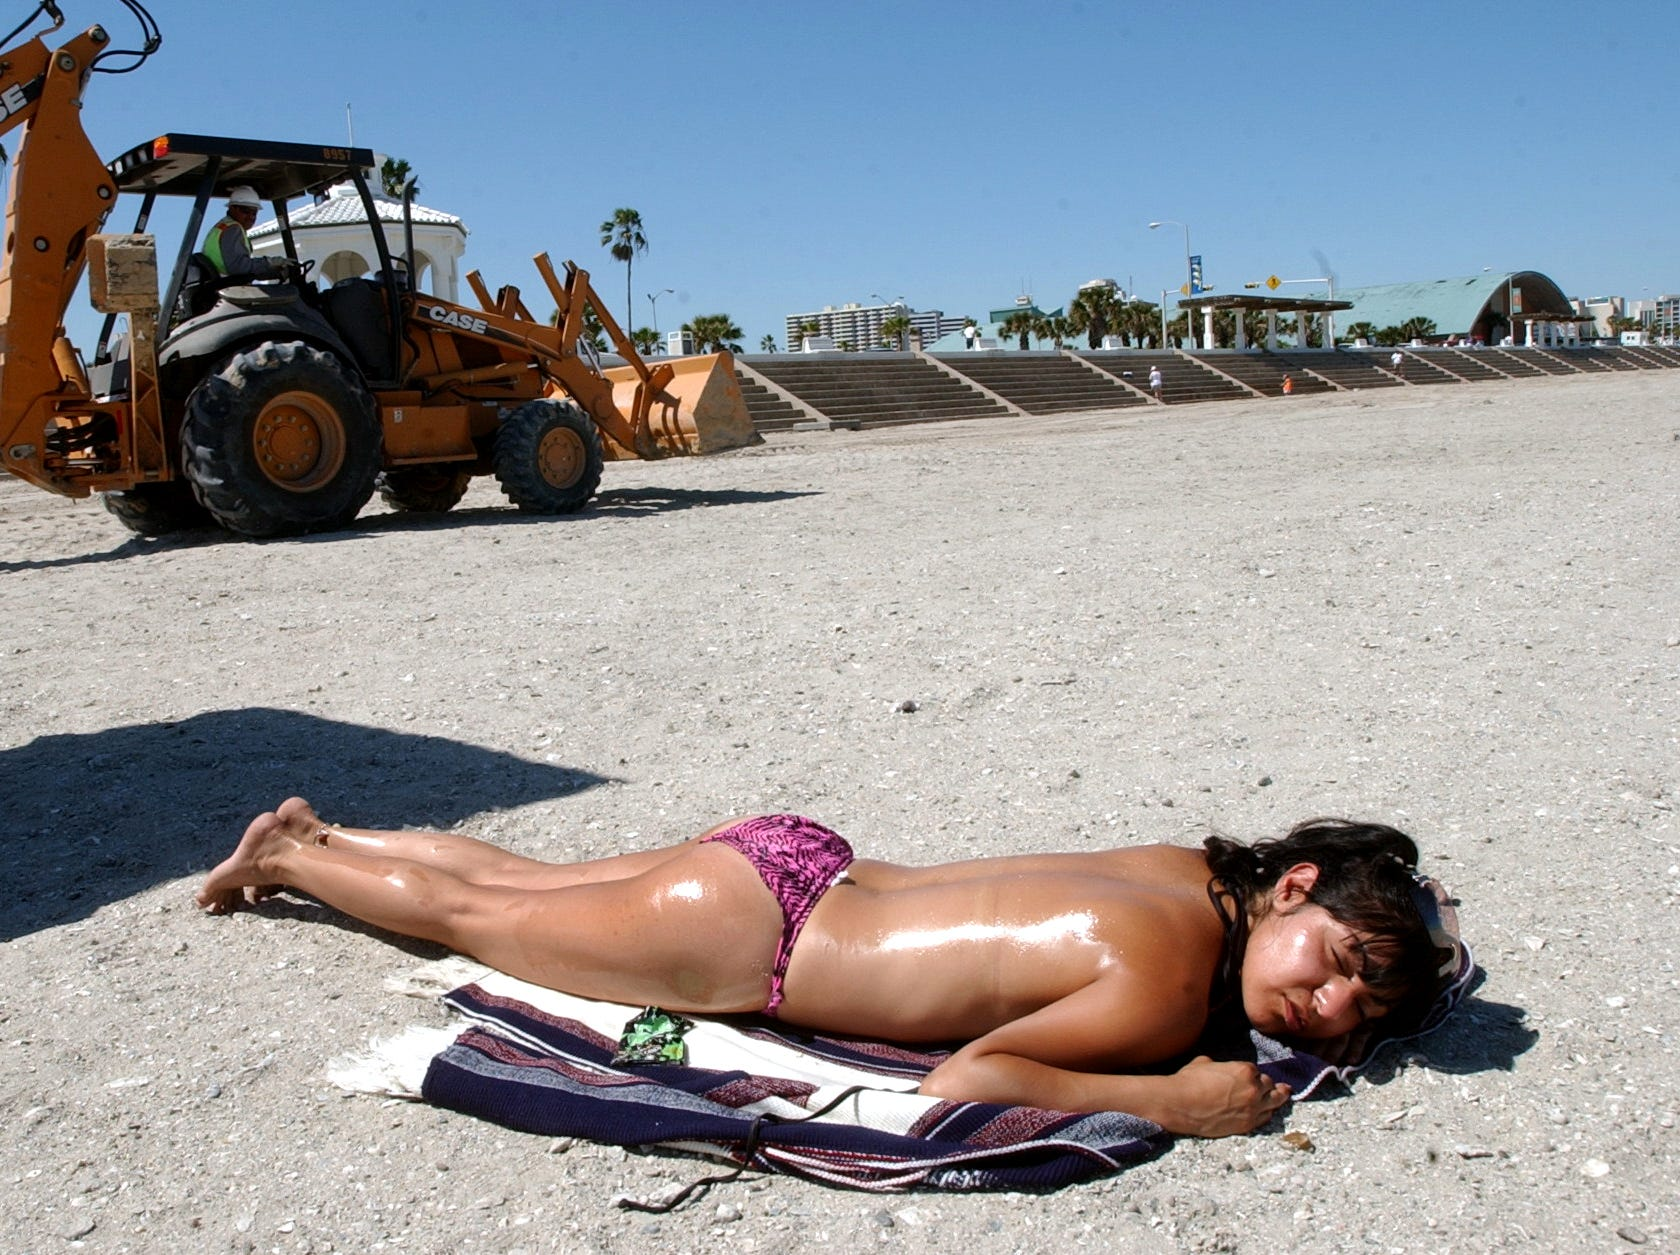 Monica Chavez from Los Angeles, Calif.,  enjoys McGee Beach in downtown Corpus Christi on Wednesday, March 31, 2004 as tractors rumbled by working on the seawall and restoring the beach with new sand.